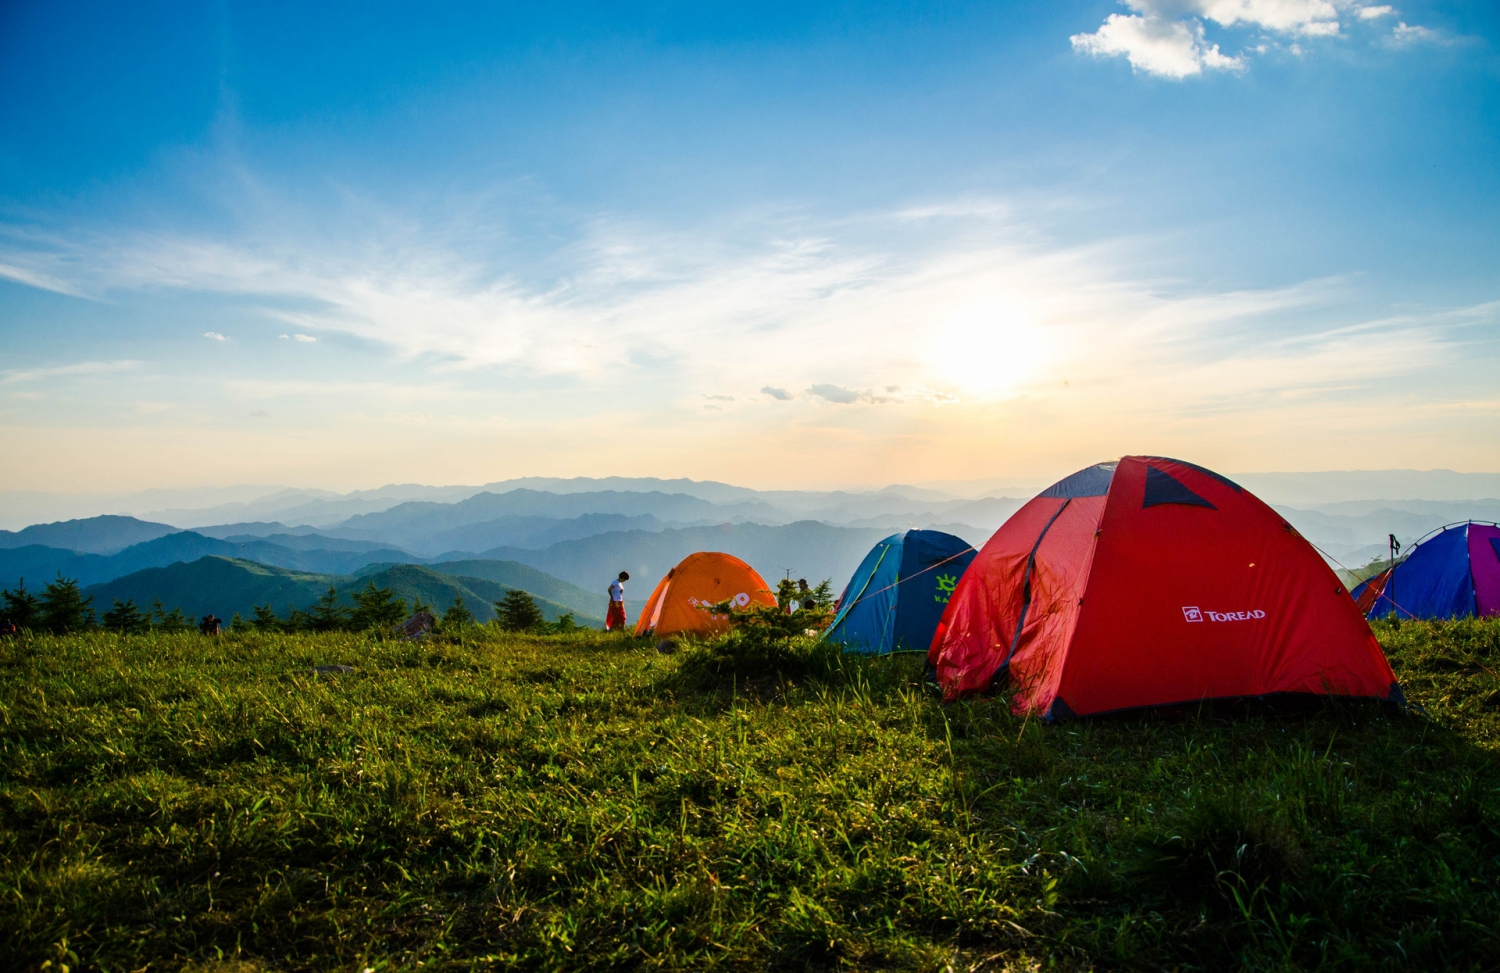 Camping Essentials - Items To Pack For Your Camping Trip